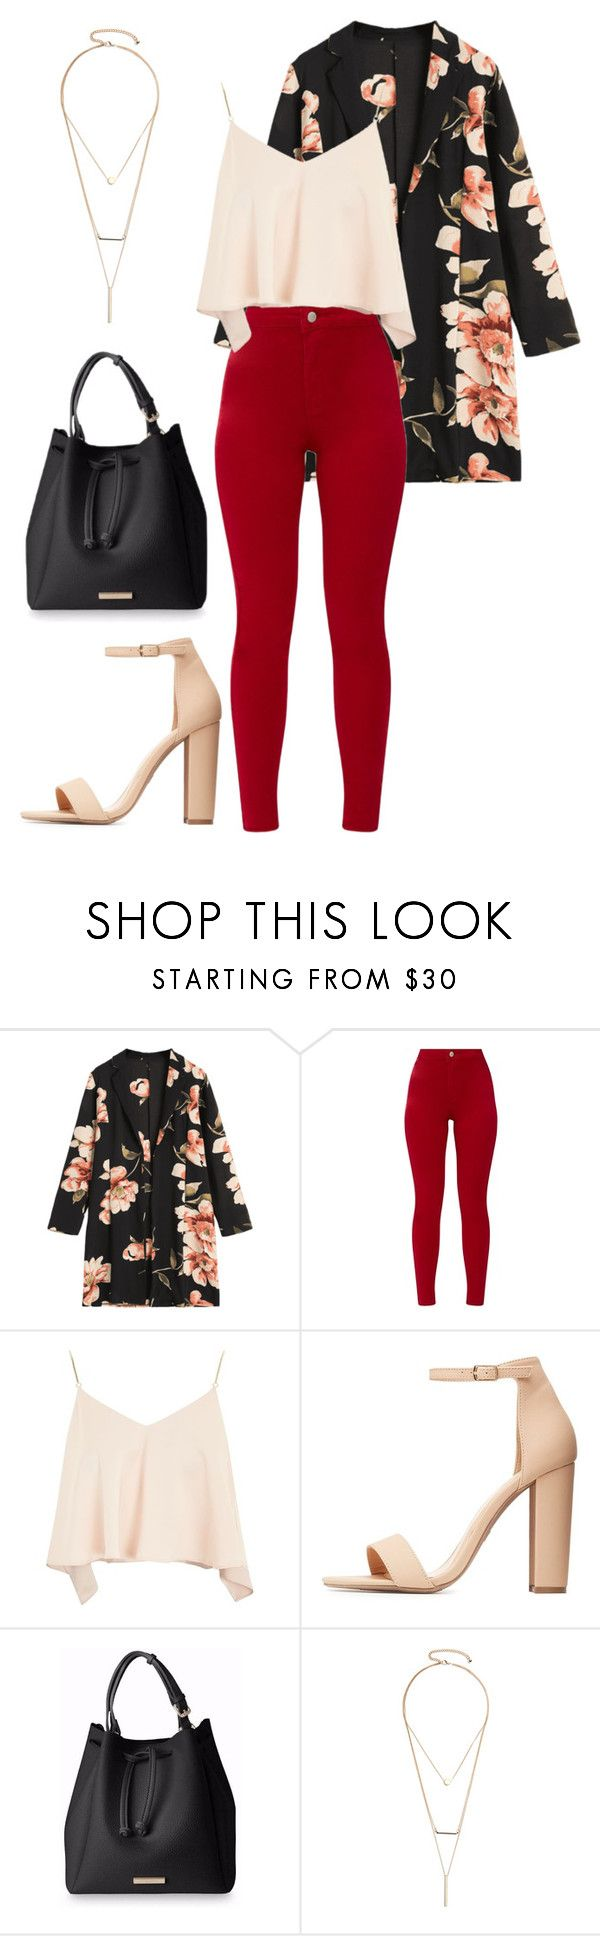 """""""Без названия #520"""" by anastasia-efremova on Polyvore featuring мода, Topshop, Charlotte Russe и GUESS by Marciano"""